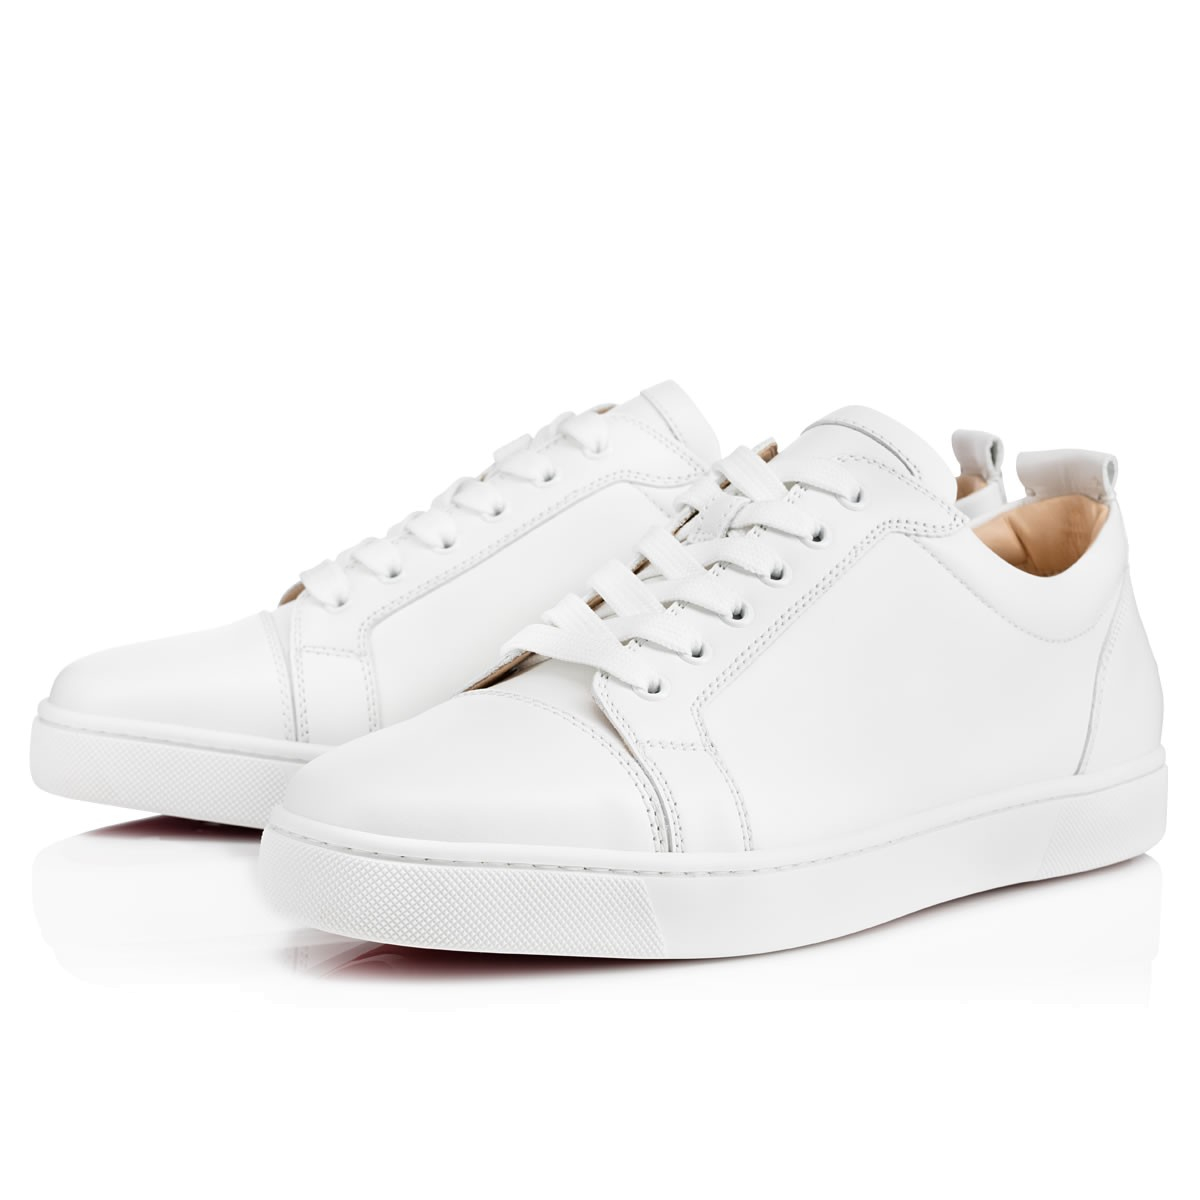 christian louboutin louis junior leather low top sneakers. Black Bedroom Furniture Sets. Home Design Ideas